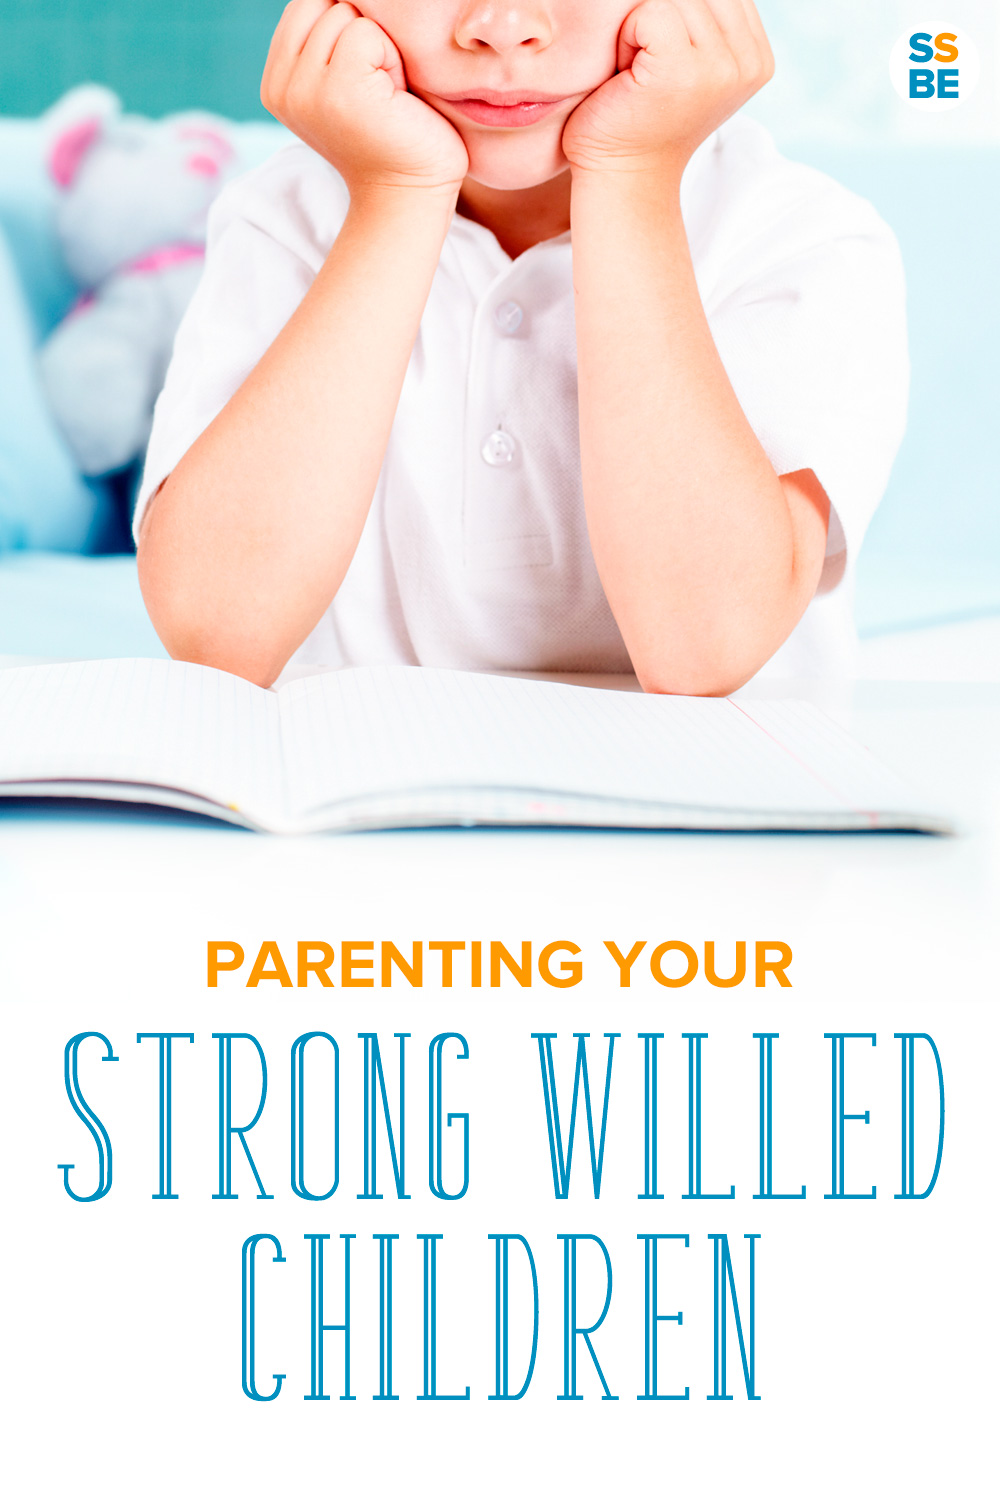 Parenting your strong willed child can be a challenge for many moms and dads. But with simple techniques, you can turn difficult situations around.